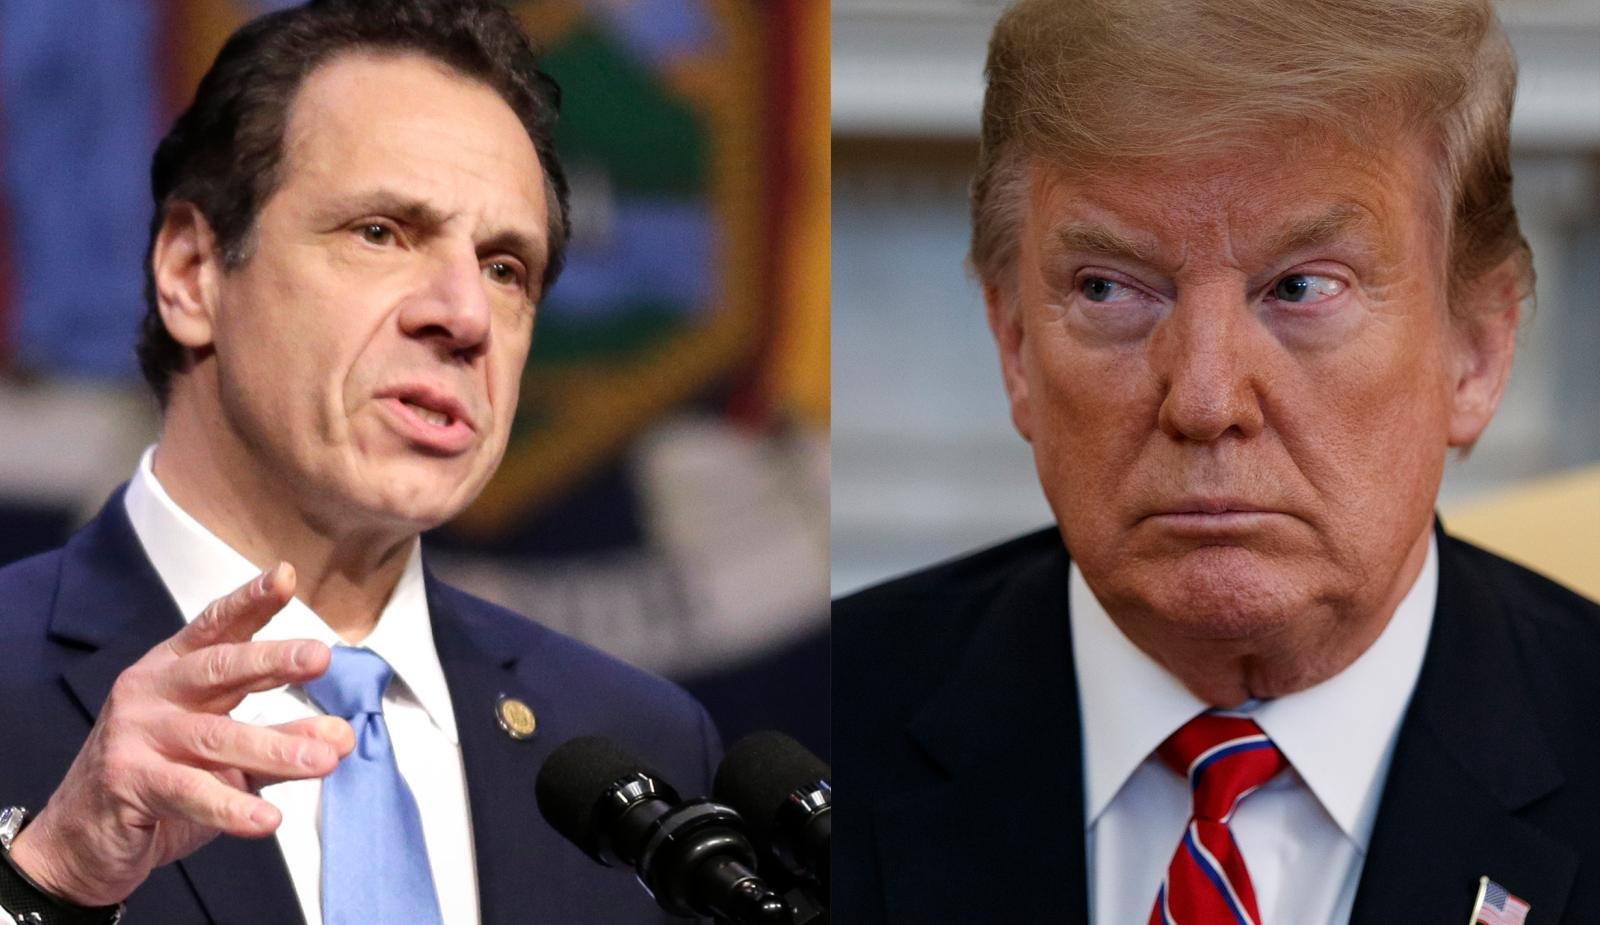 With Bernie Out, Could We Have a Cuomo Candidacy in 2020? - Election Central